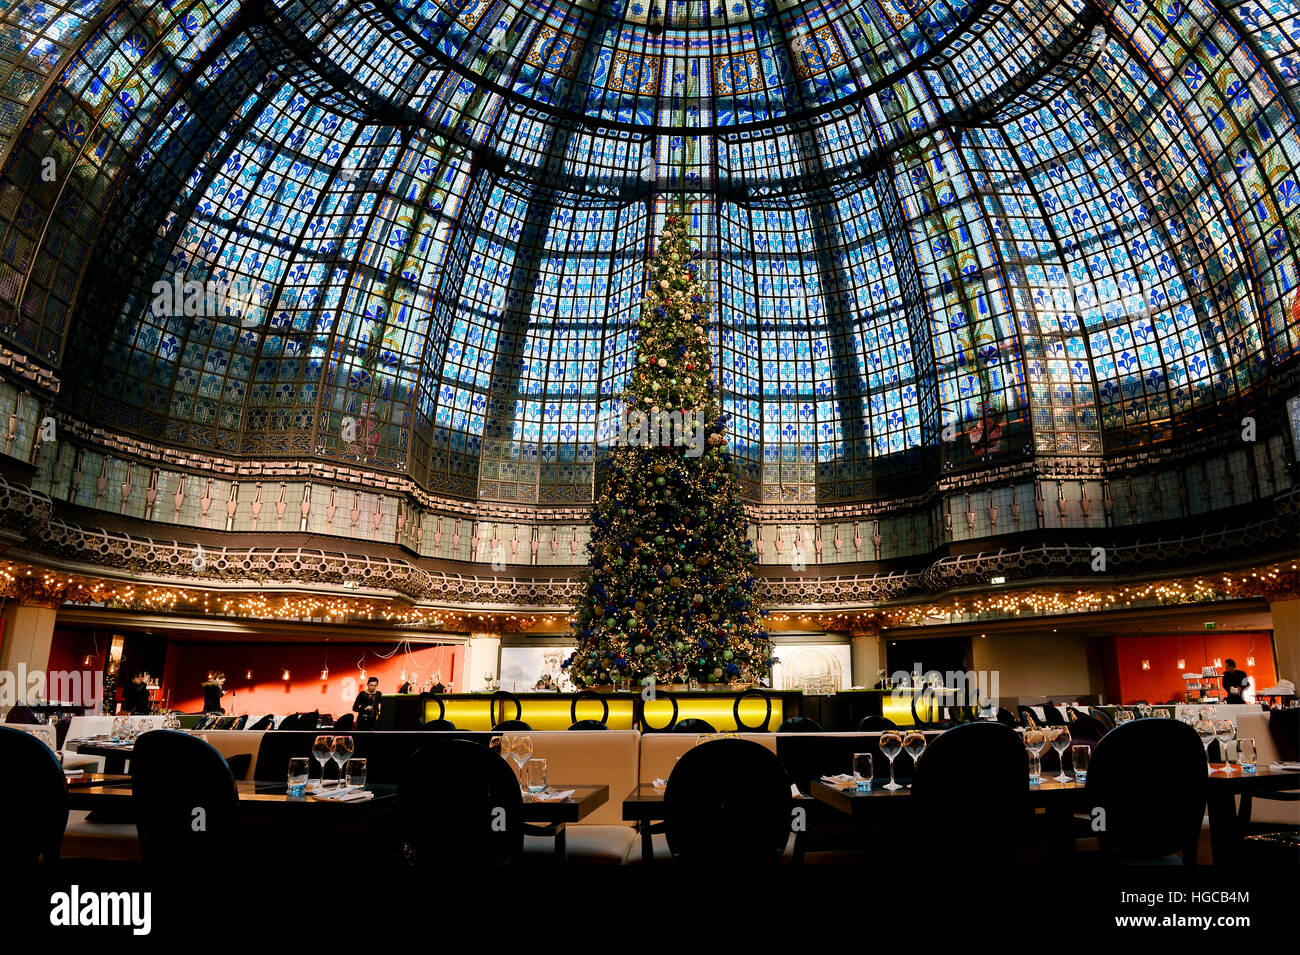 Le Printemps Paris Glass Roof In Le Printemps Haussmann Paris France Stock Photo